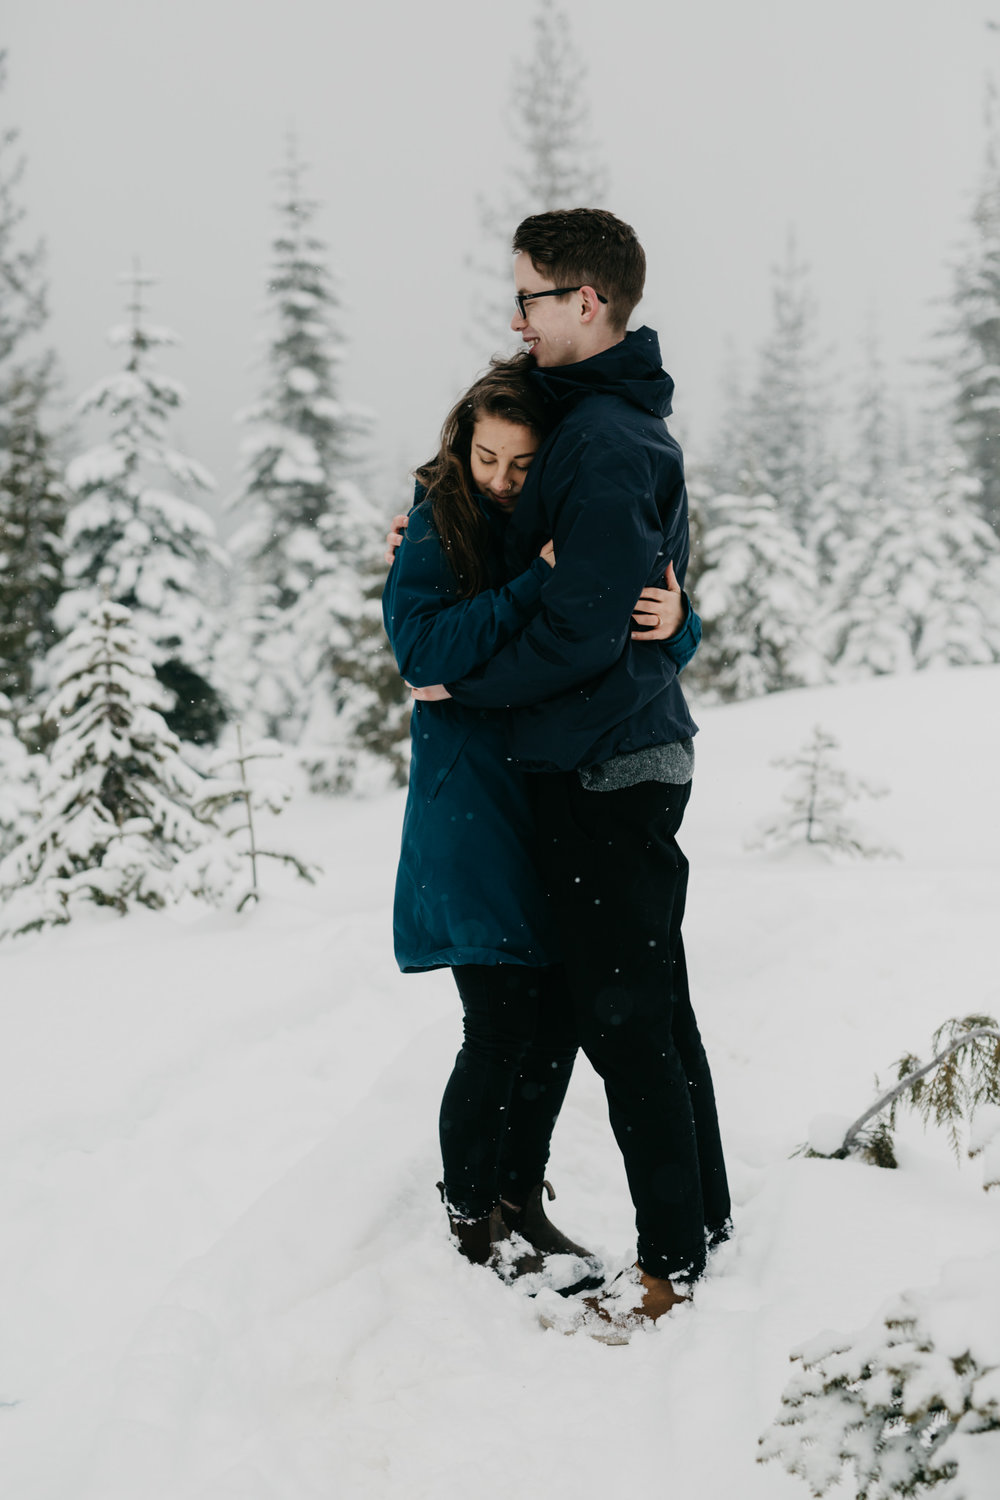 greg+jade-mount-washington-winter-engagement099.JPG